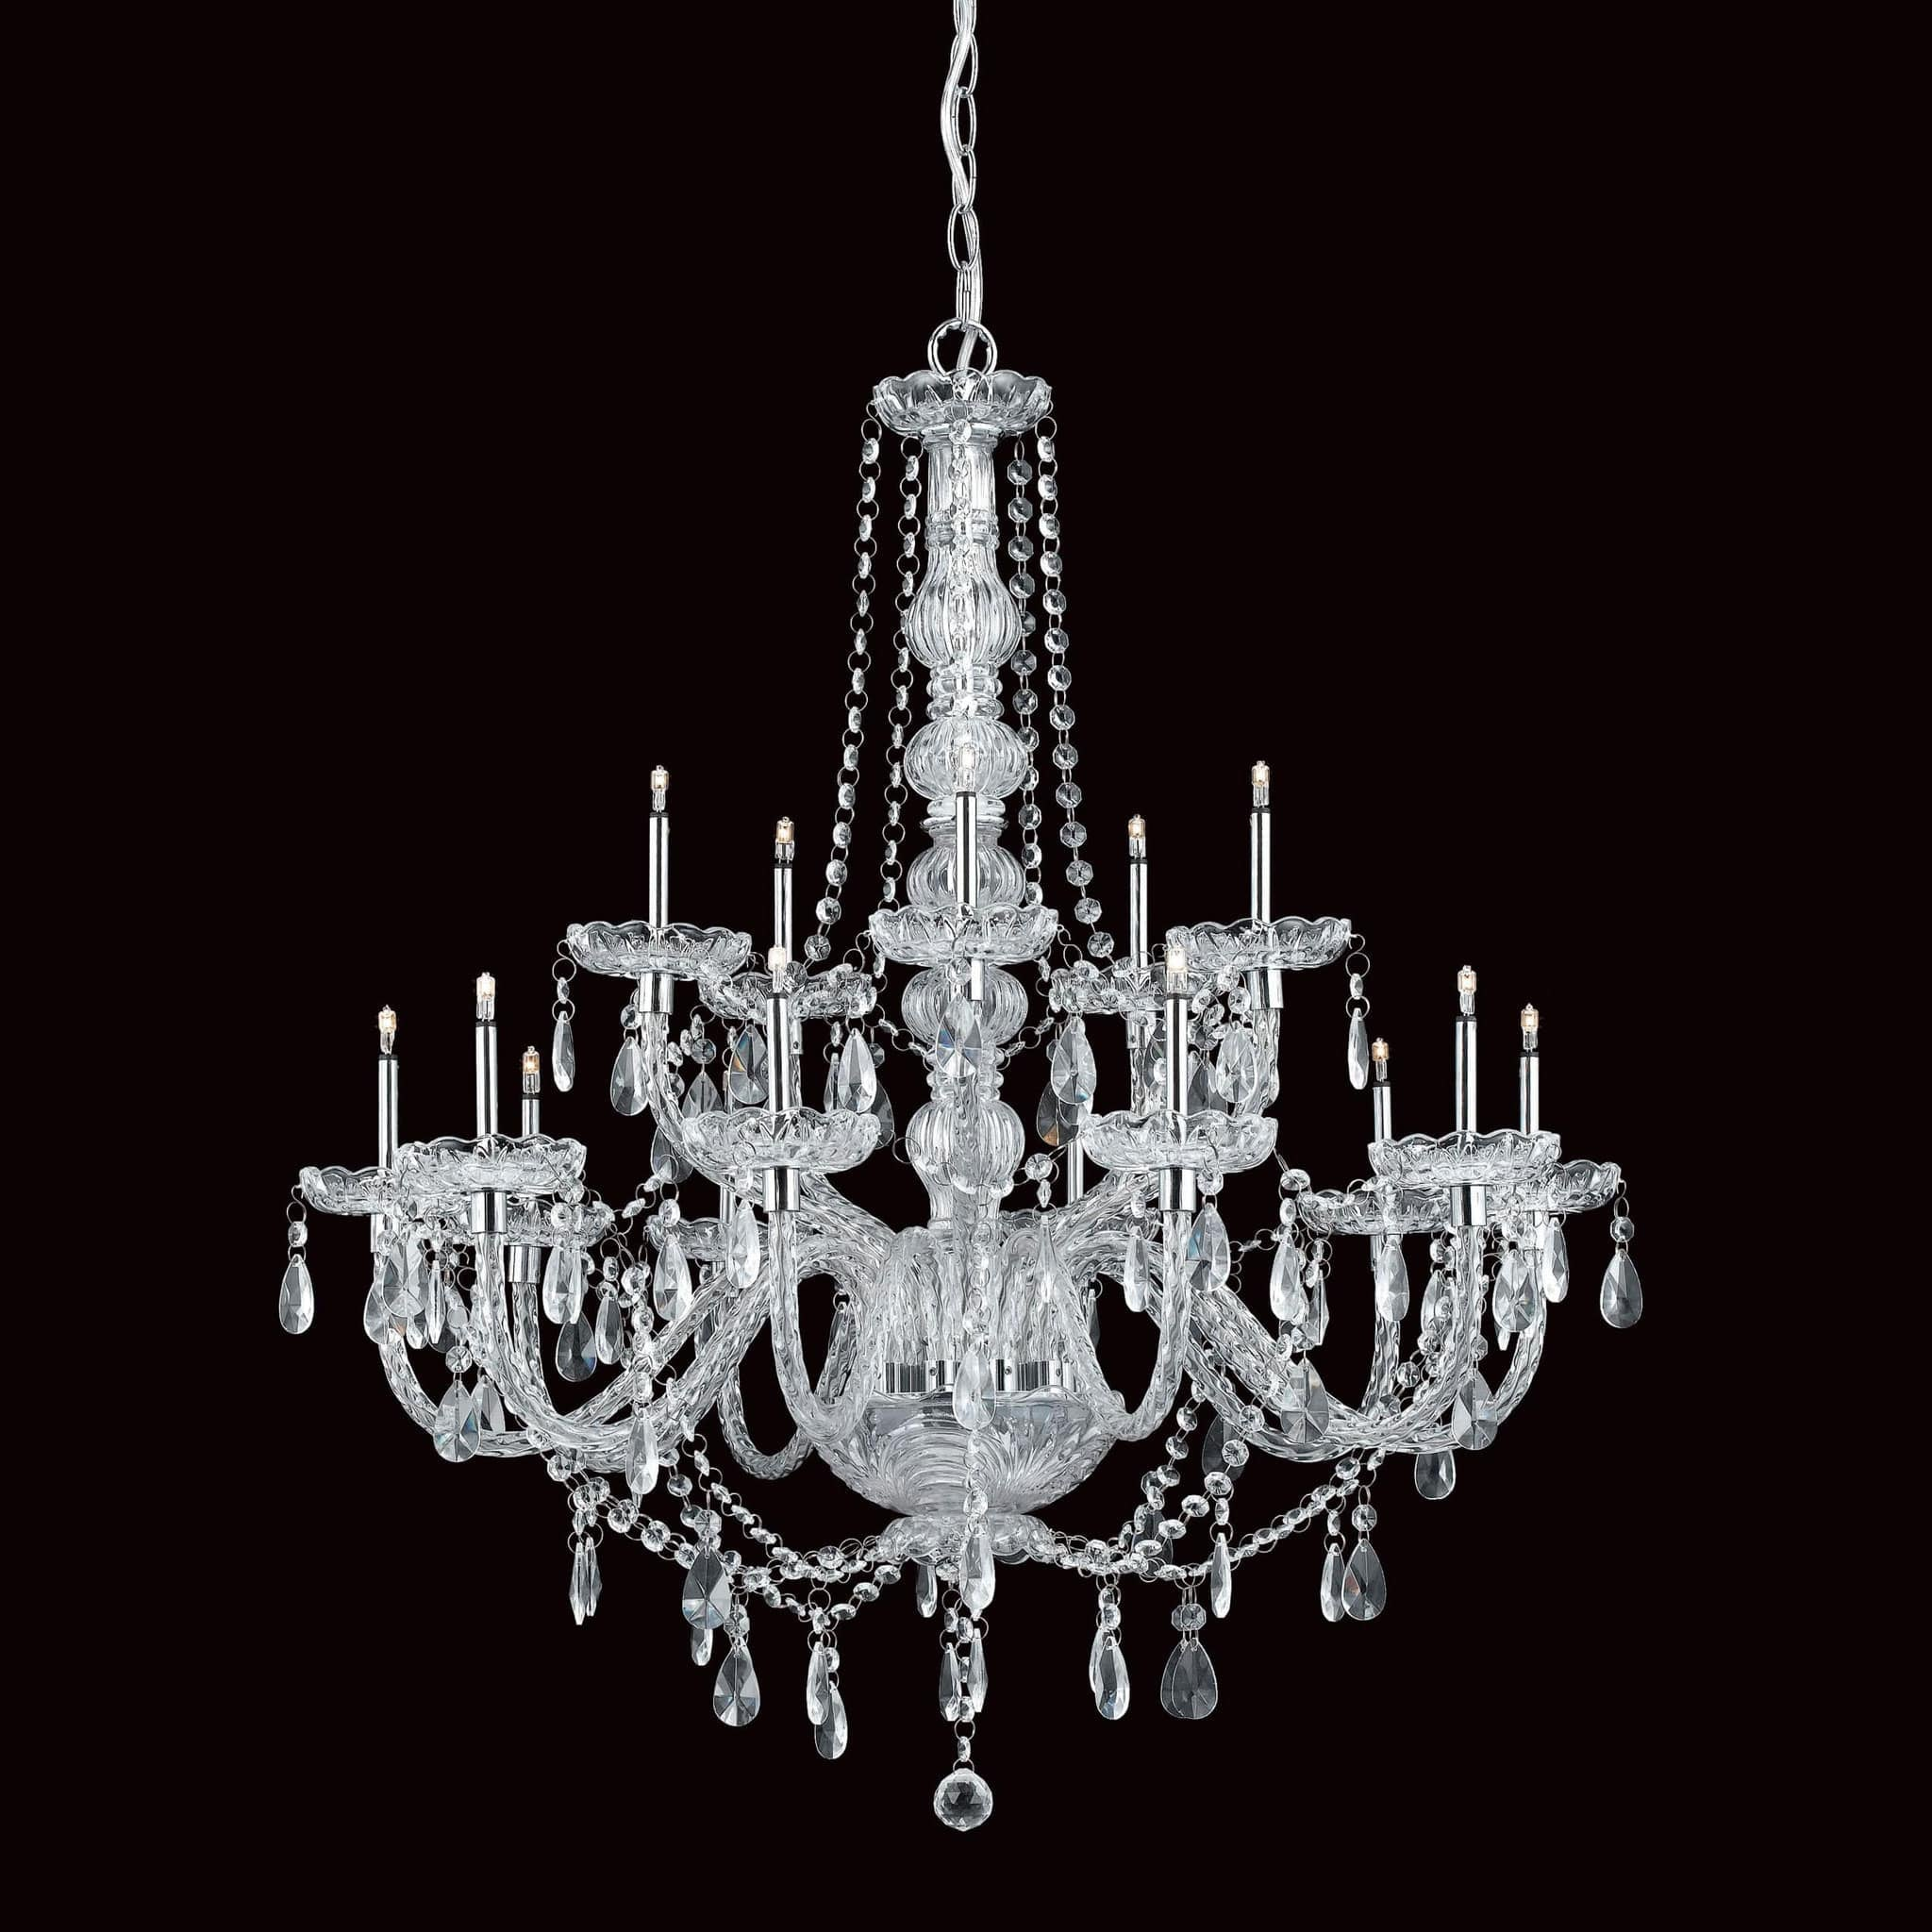 Impex Imperia 15 Light Chrome Candle Crystal Chandelier CFH011021/15/CH ...